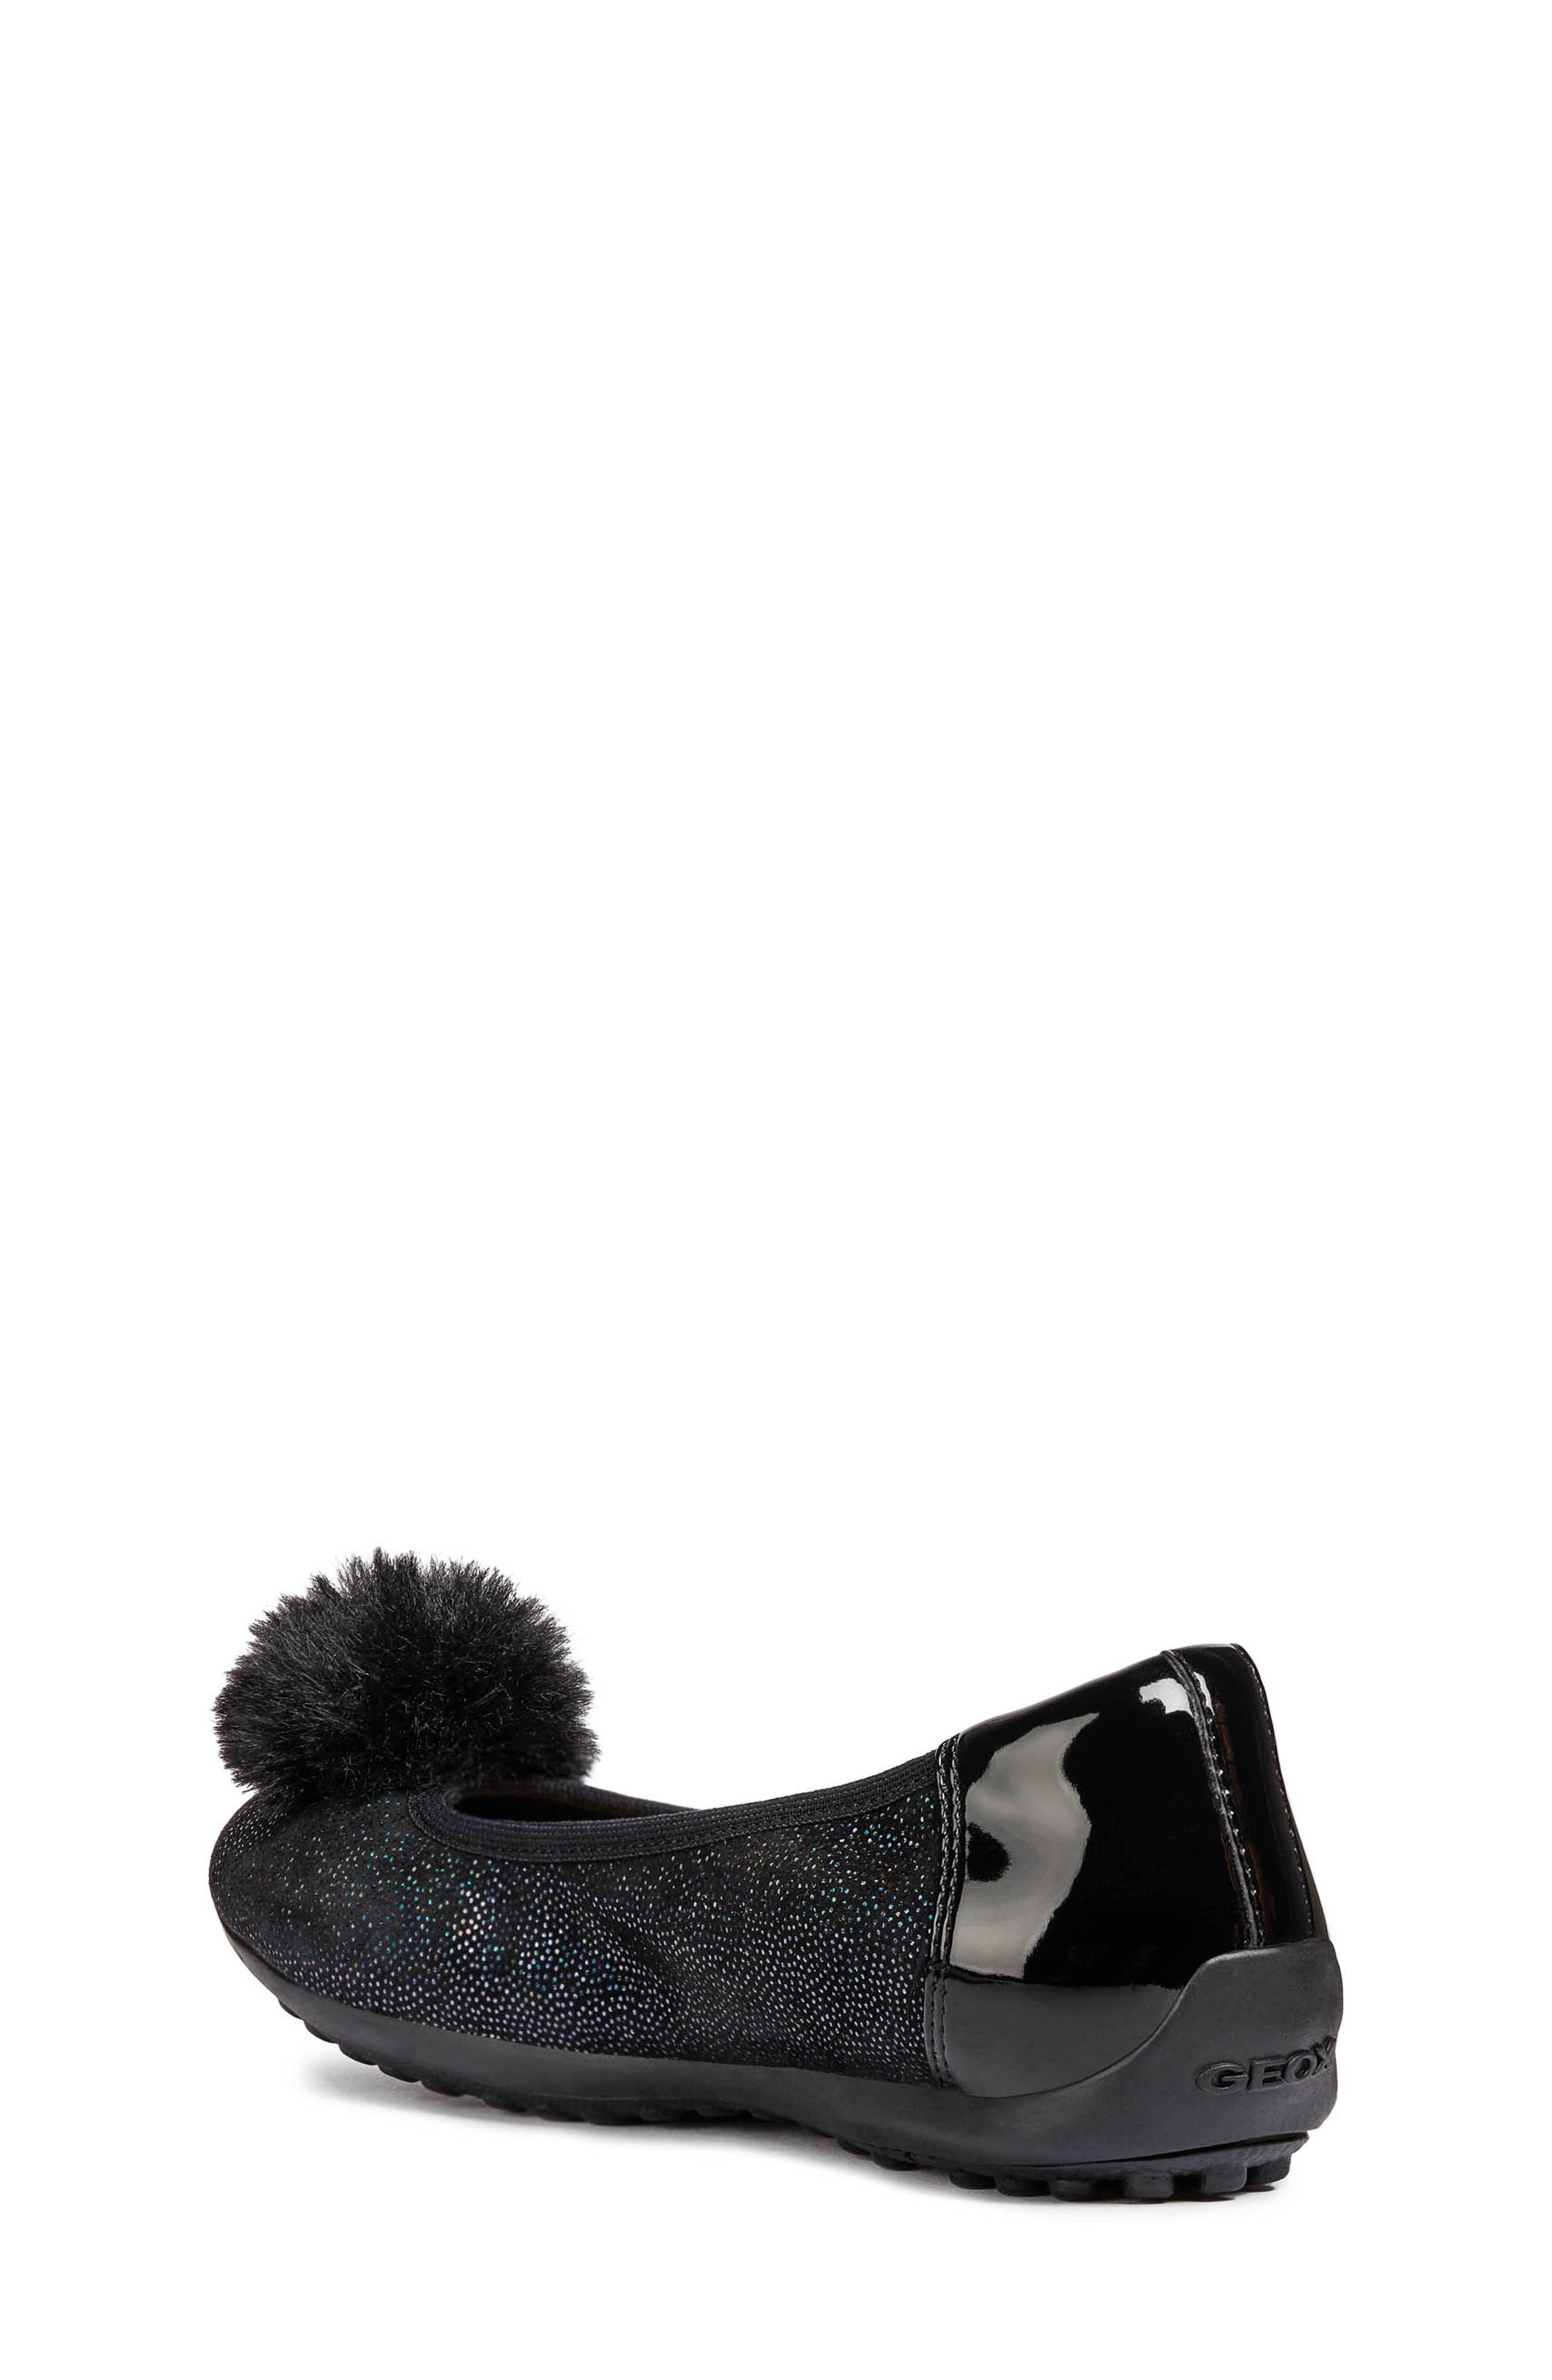 GEOX, Piuma Faux Fur Pom Glitter Ballerina Flat, Alternate thumbnail 2, color, BLACK